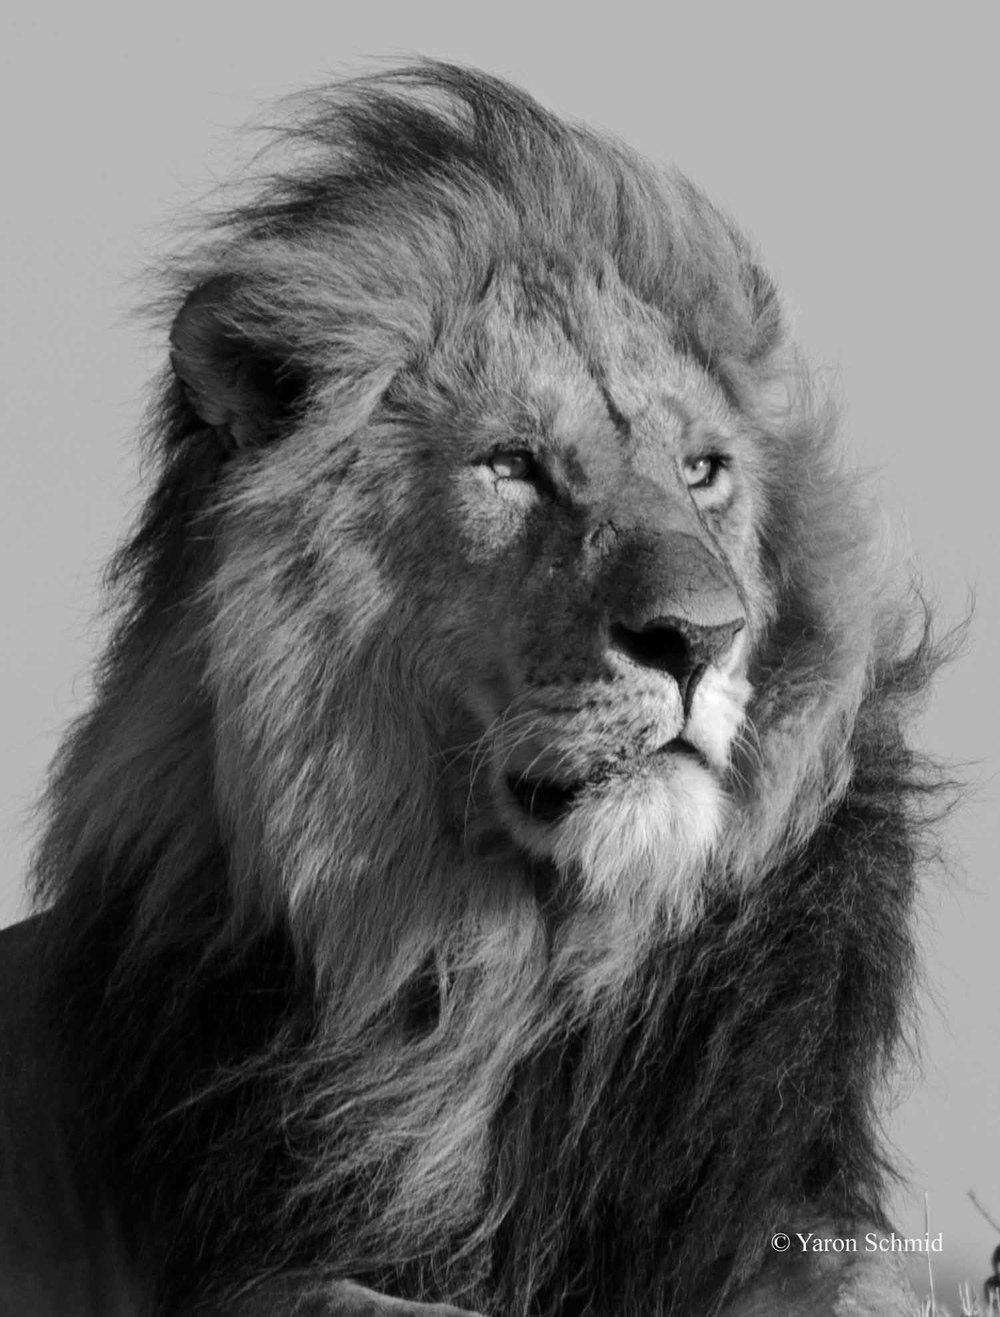 The Lion King in B&W